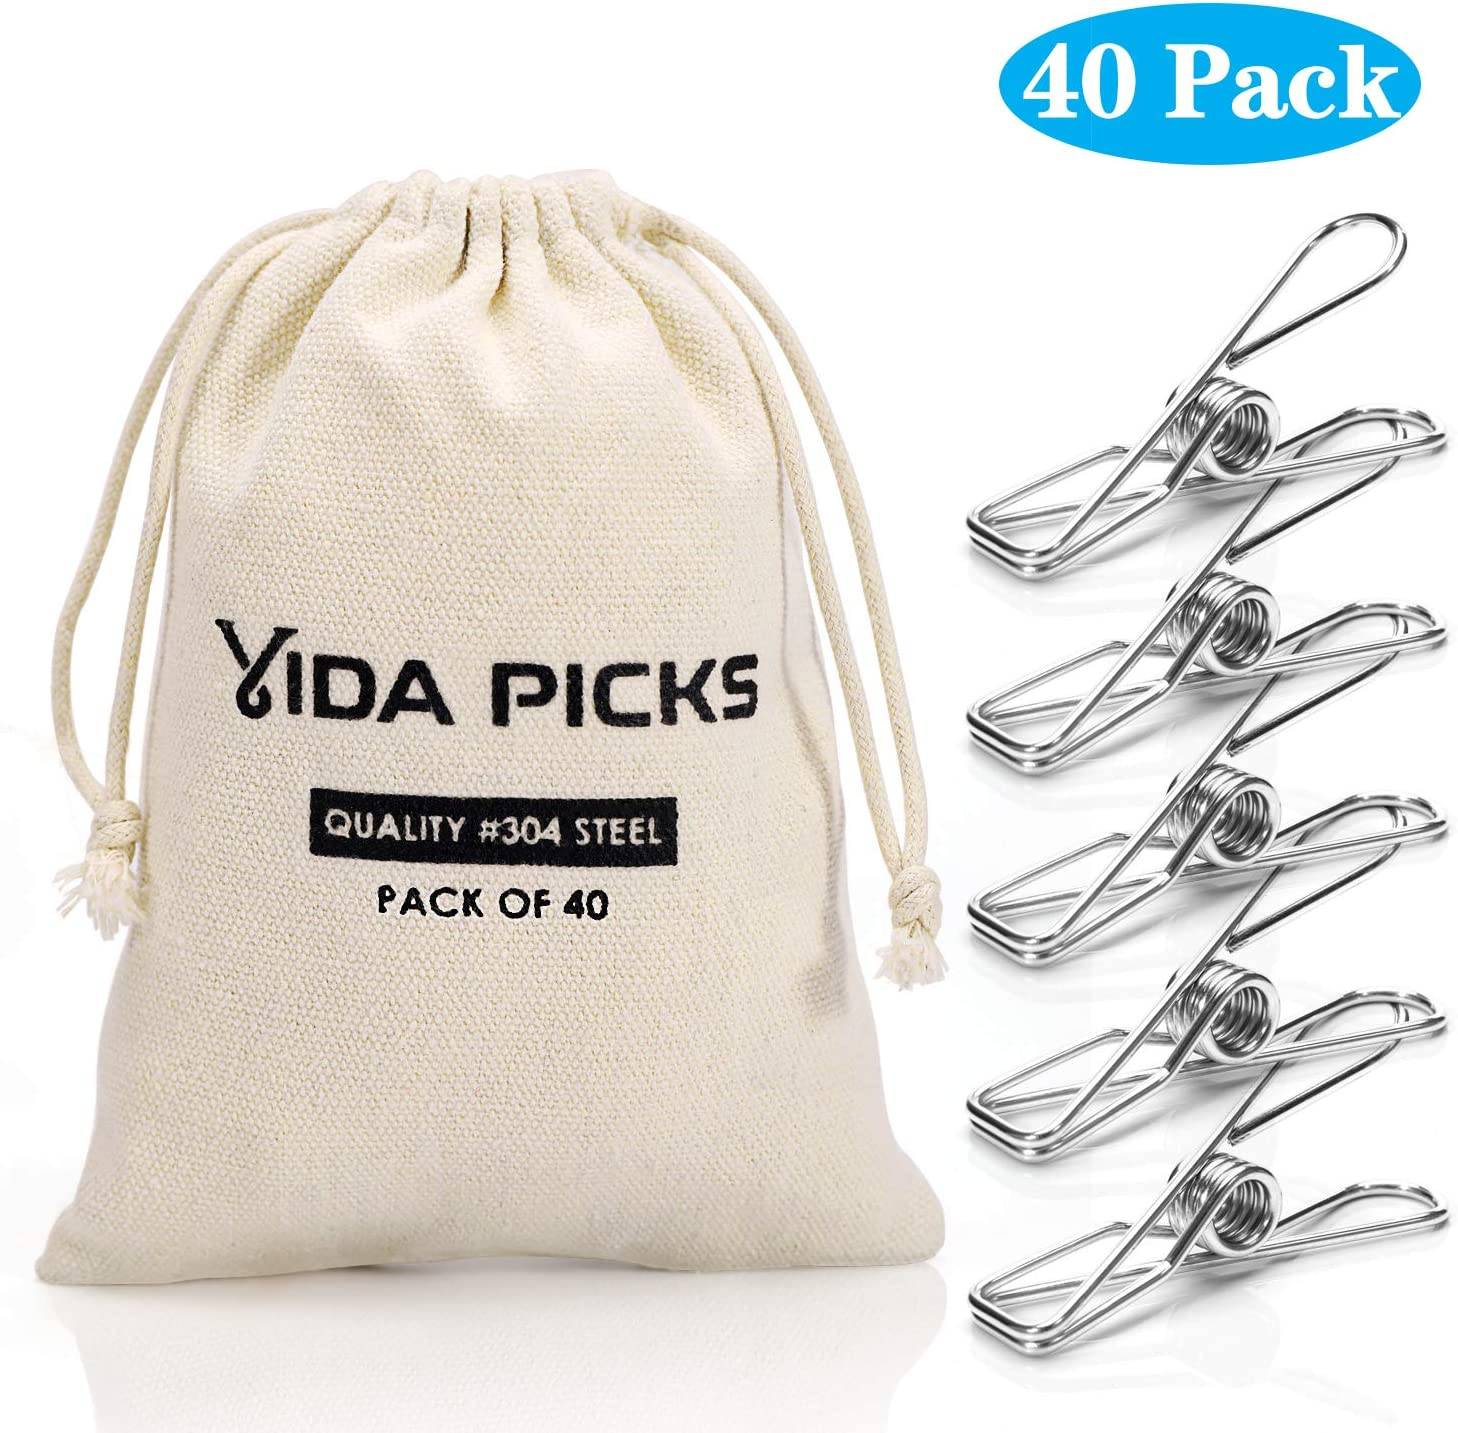 Wire Clothespins Laundry Chip Clips-40 Pack Bulk Clothes Pins with Heavy Duty, Durable Clamp Metal Clothes Pegs Multi-purpose for Outdoor Clothesline Home Kitchen Travel Office Decor Food Bag (Silver)